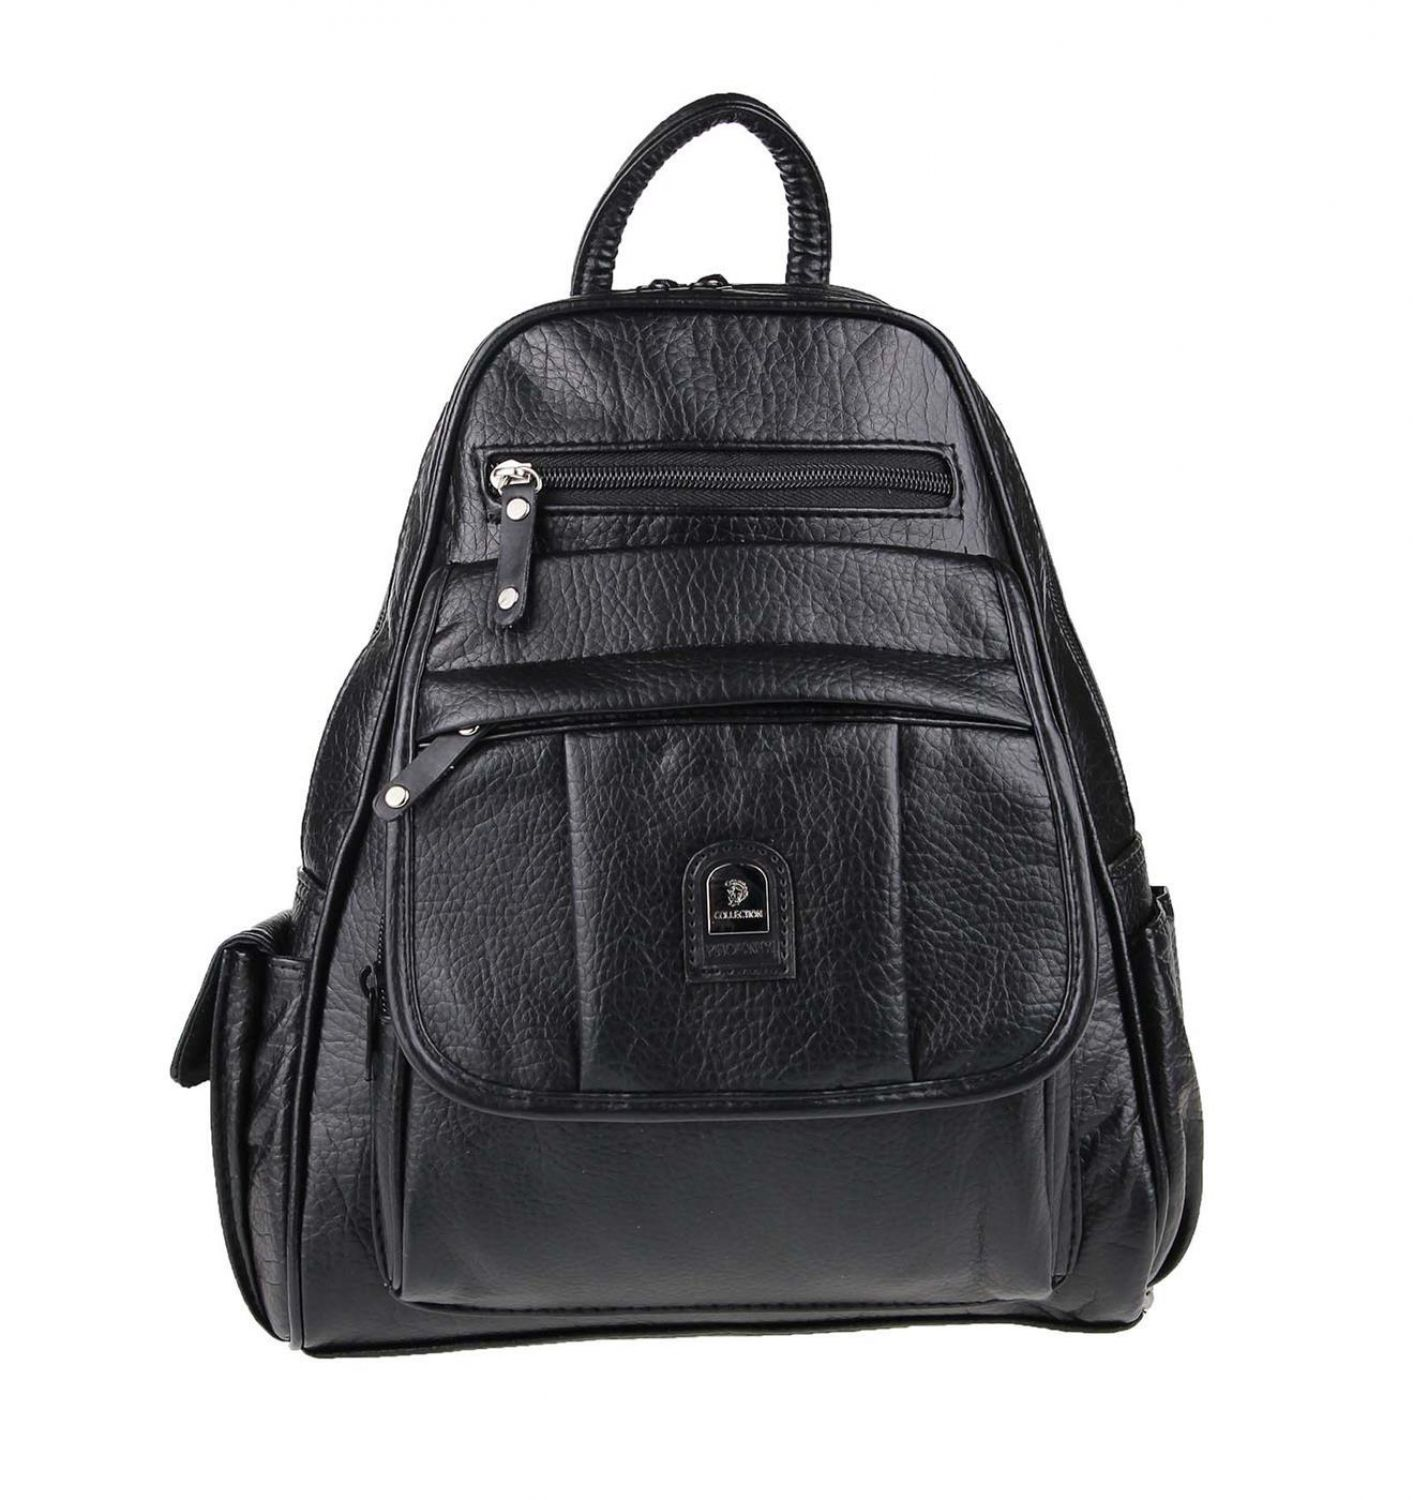 luxus unisex rucksack cityrucksack tasche stadtrucksack schultertasche tasche ebay. Black Bedroom Furniture Sets. Home Design Ideas